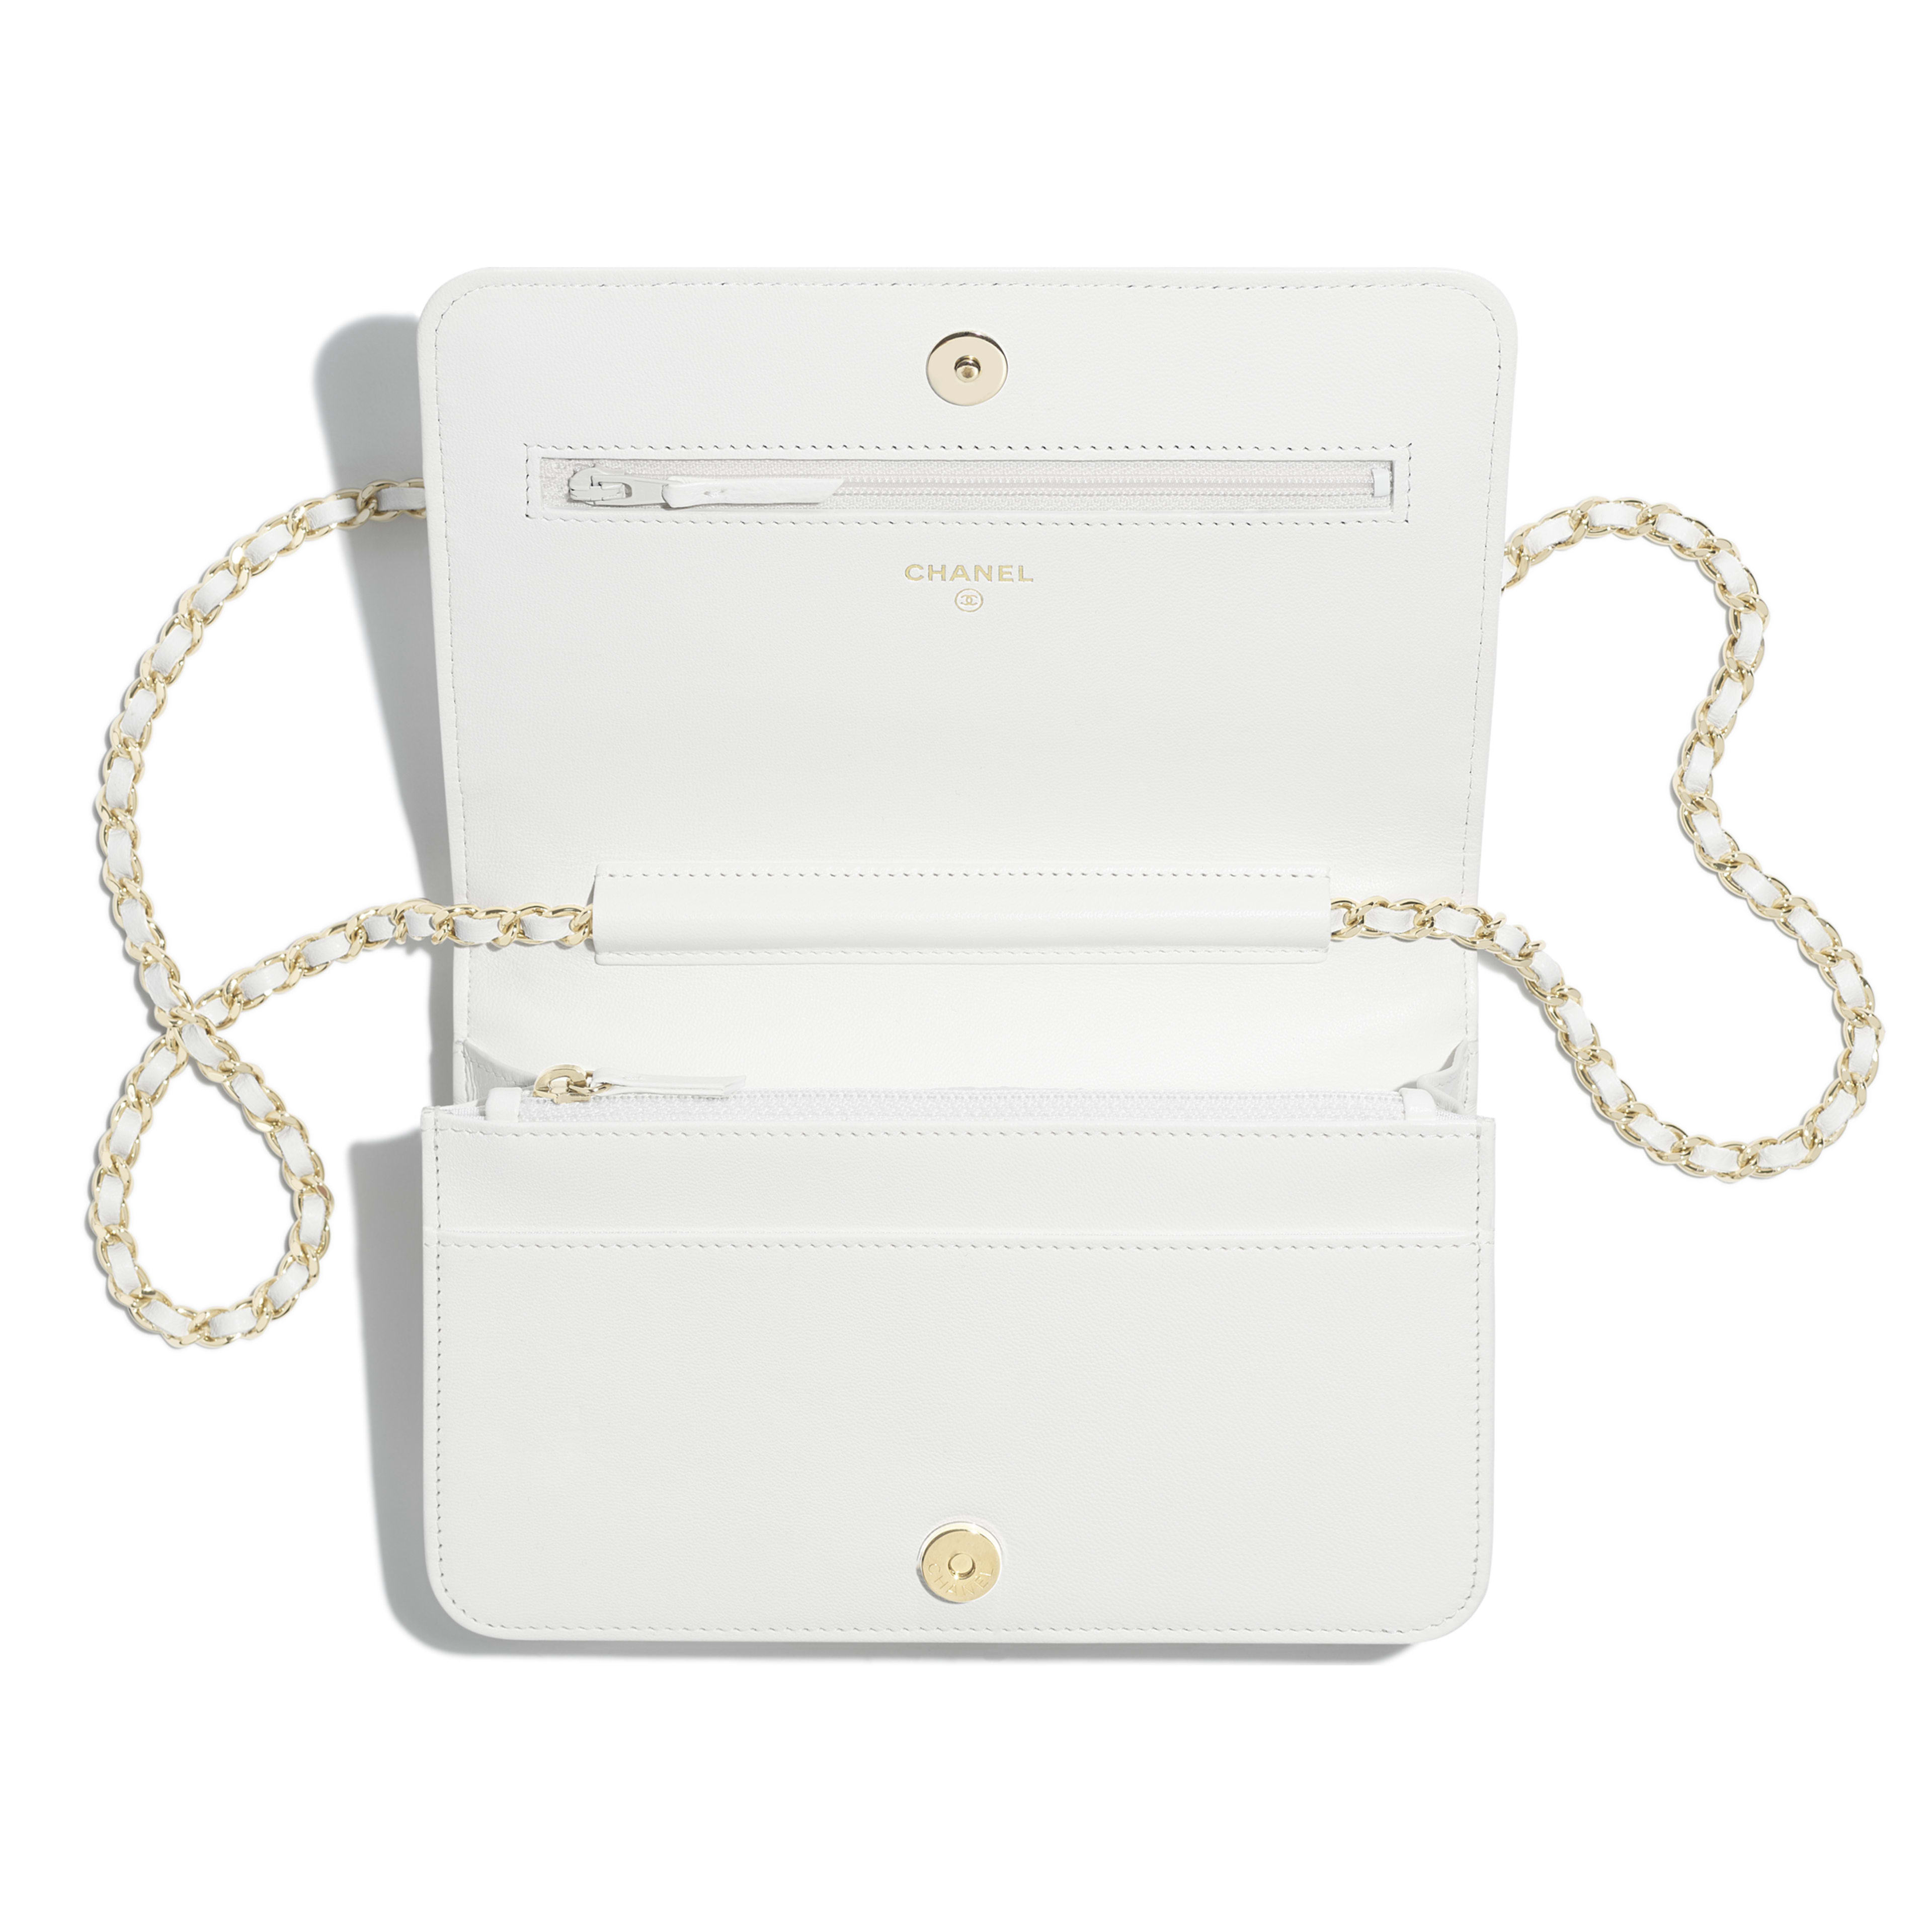 Wallet on Chain - White - Shiny Lambskin & Gold-Tone Metal - Other view - see full sized version